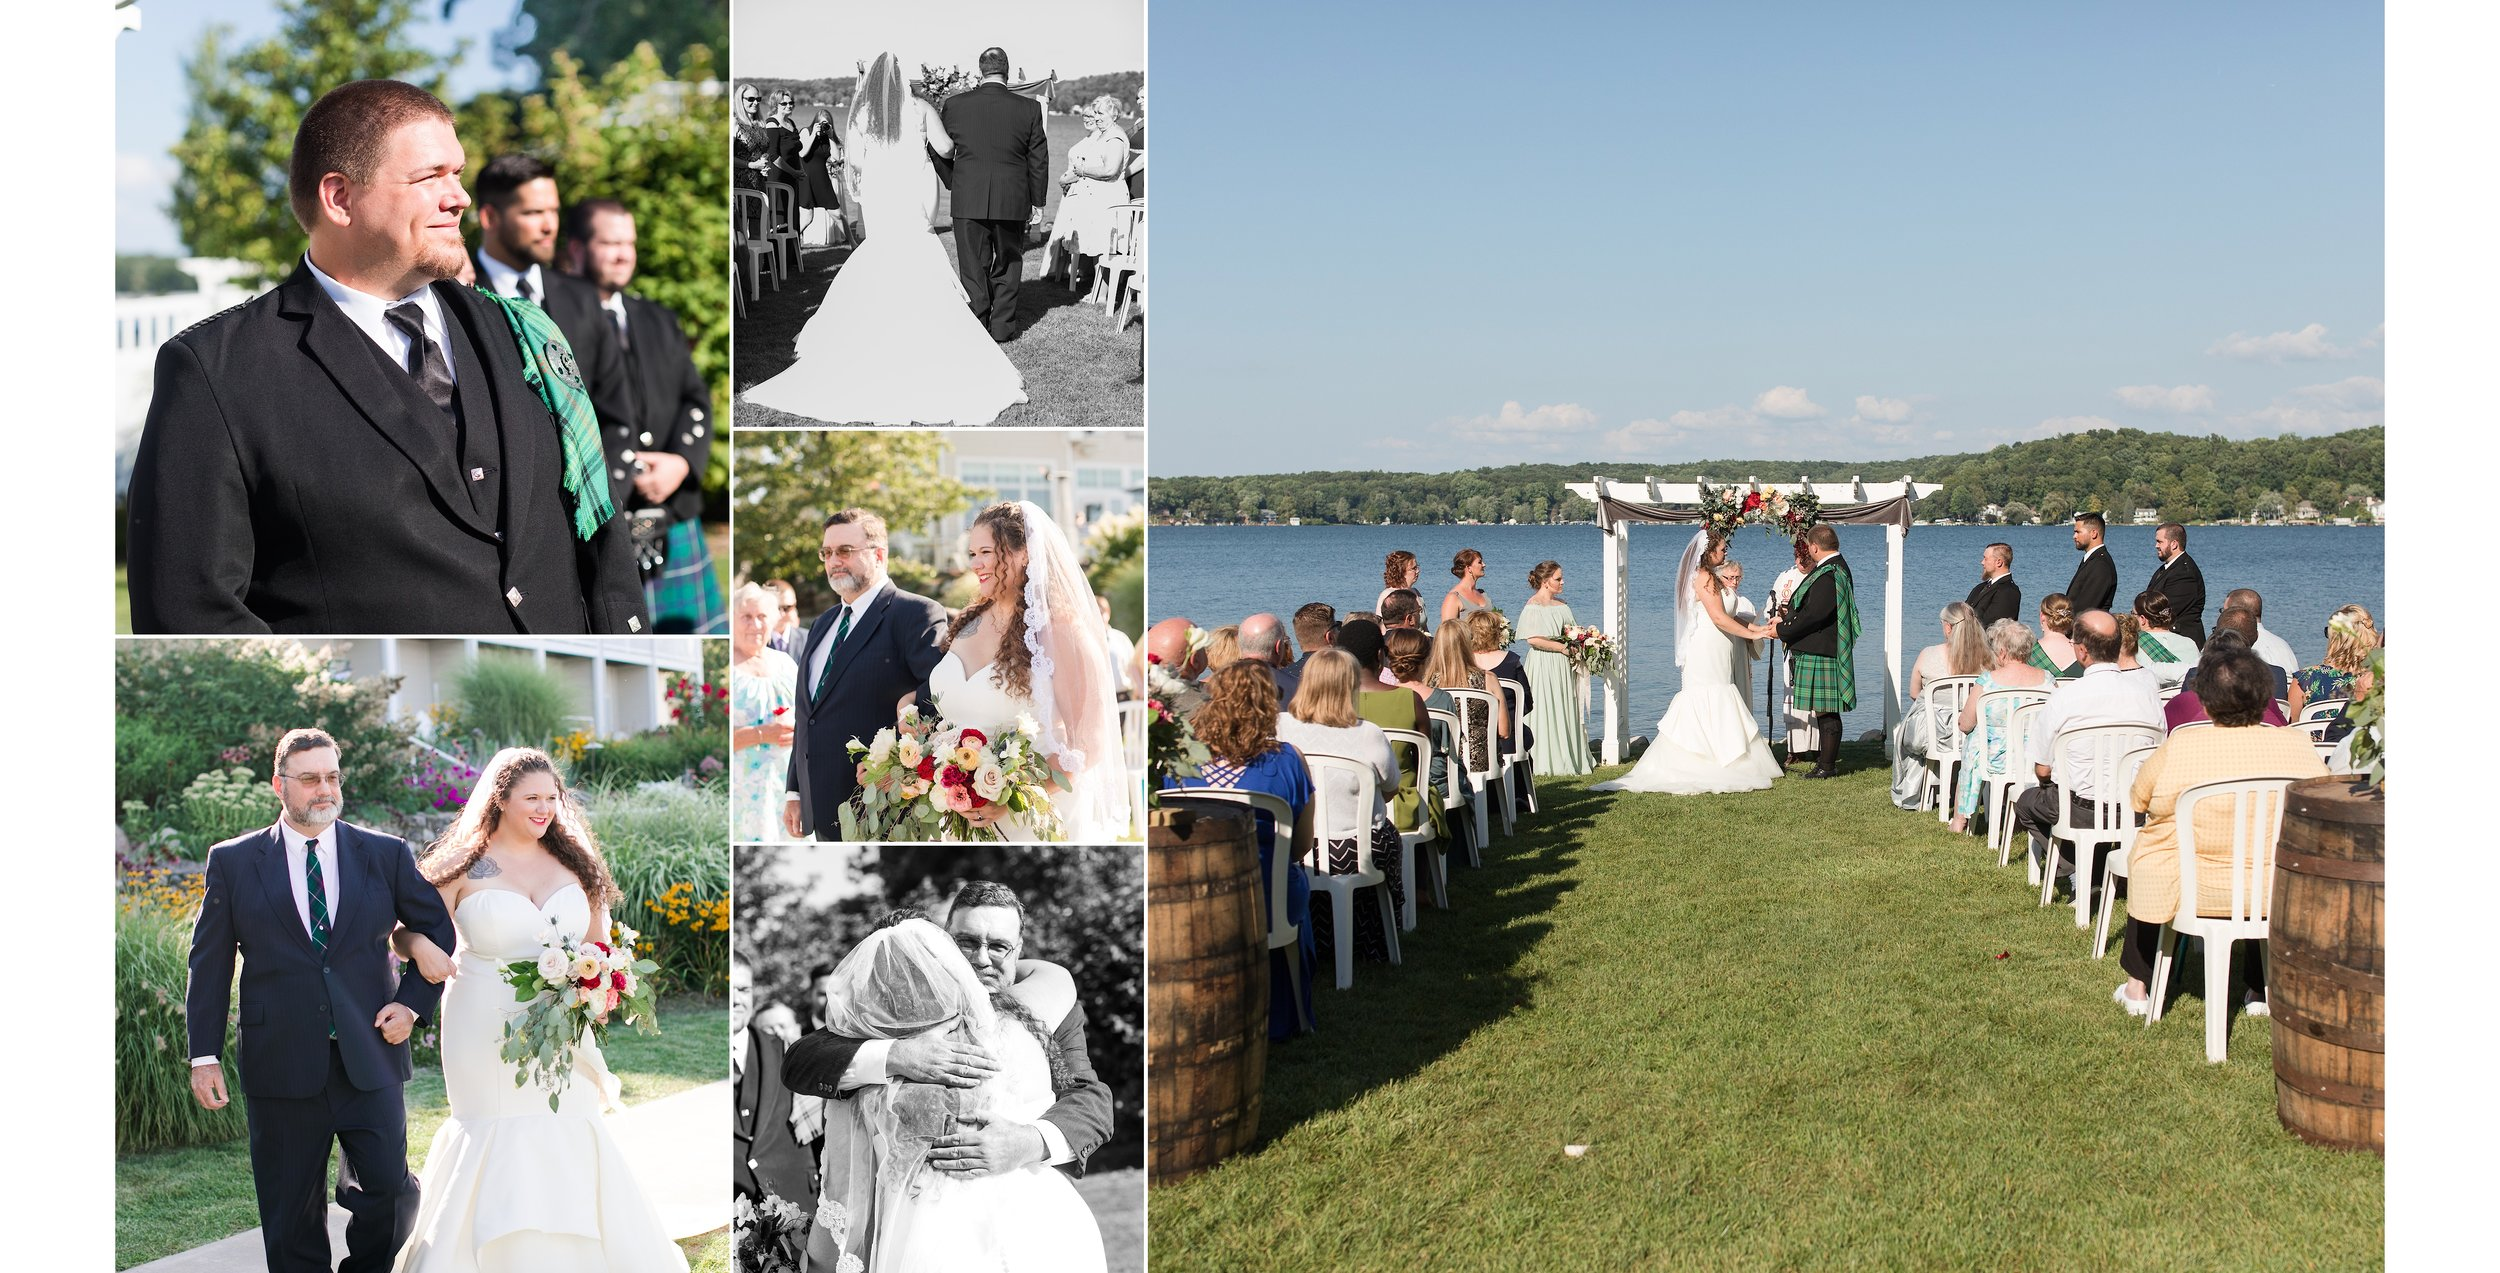 Our_Wedding_Album_12x12_-_30_pages_19.jpg